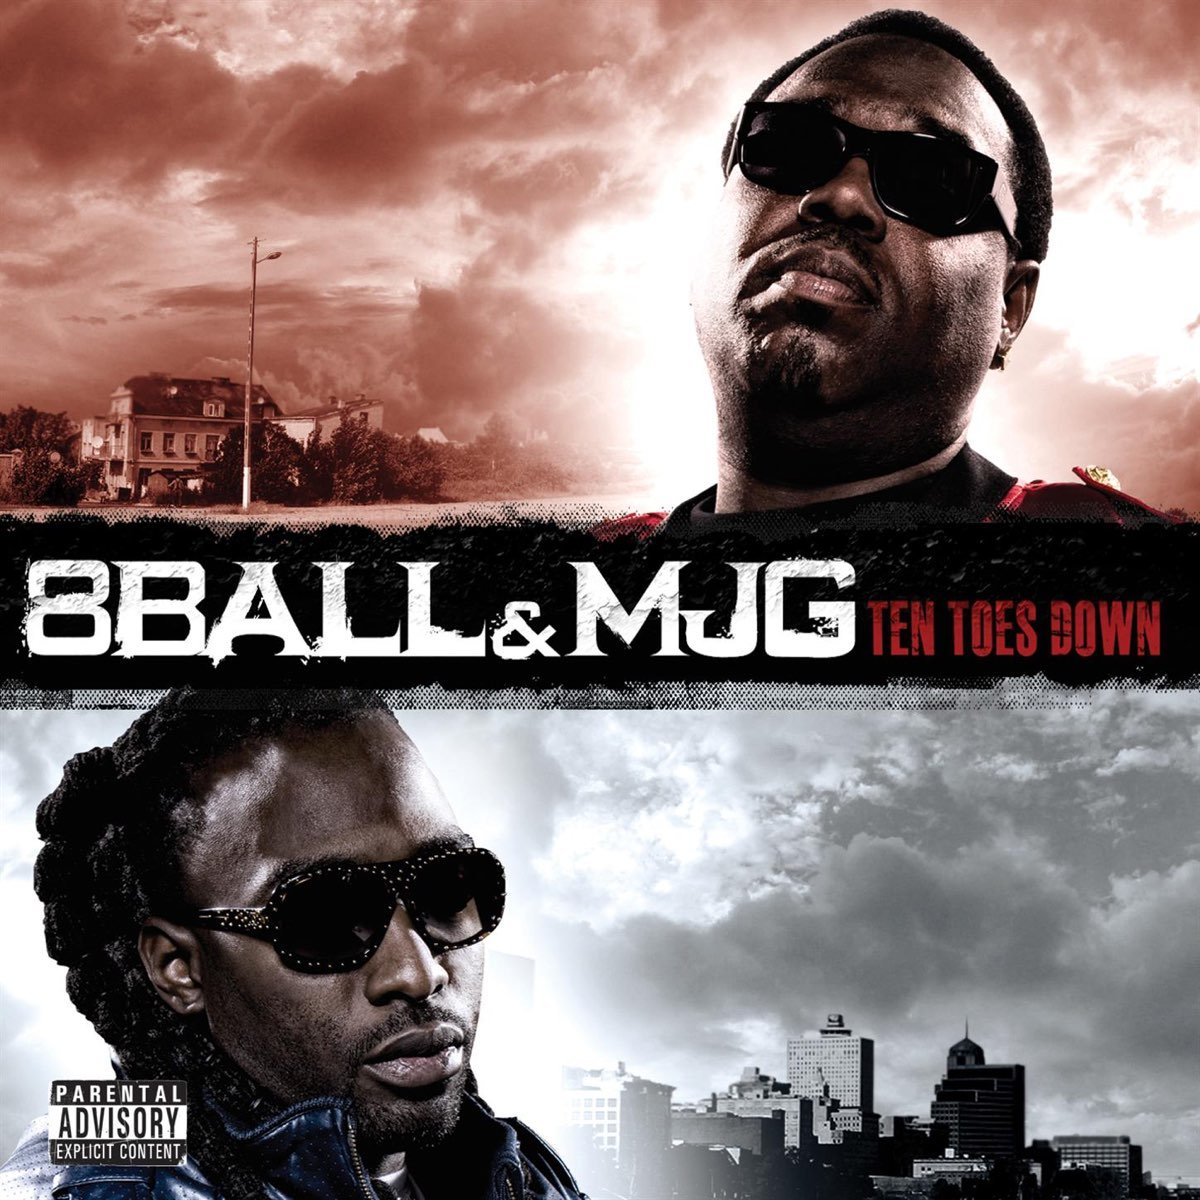 8Ball and MJG, Ten Toes Down